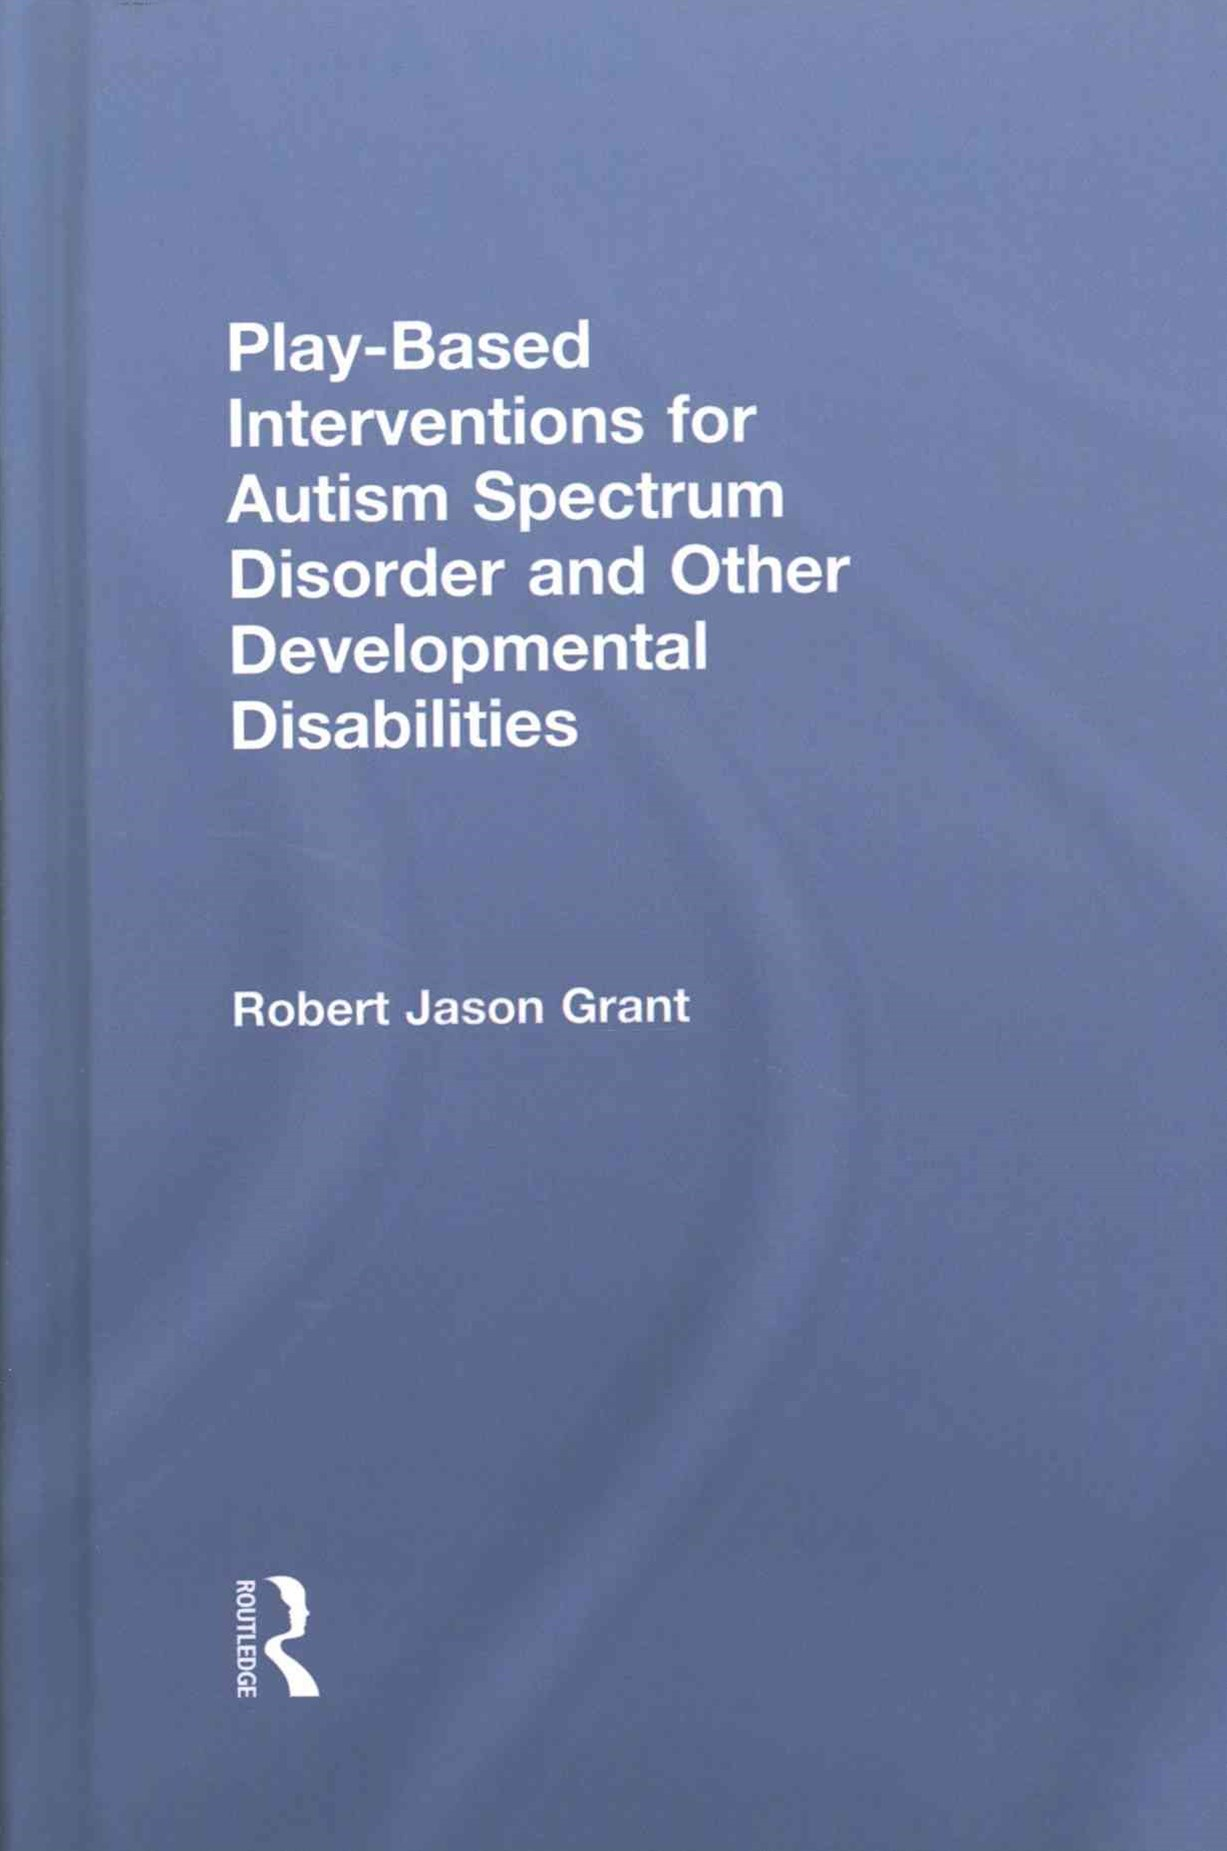 Play-Based Interventions for Autism Spectrum Disorder and Other Developmental Disabilities